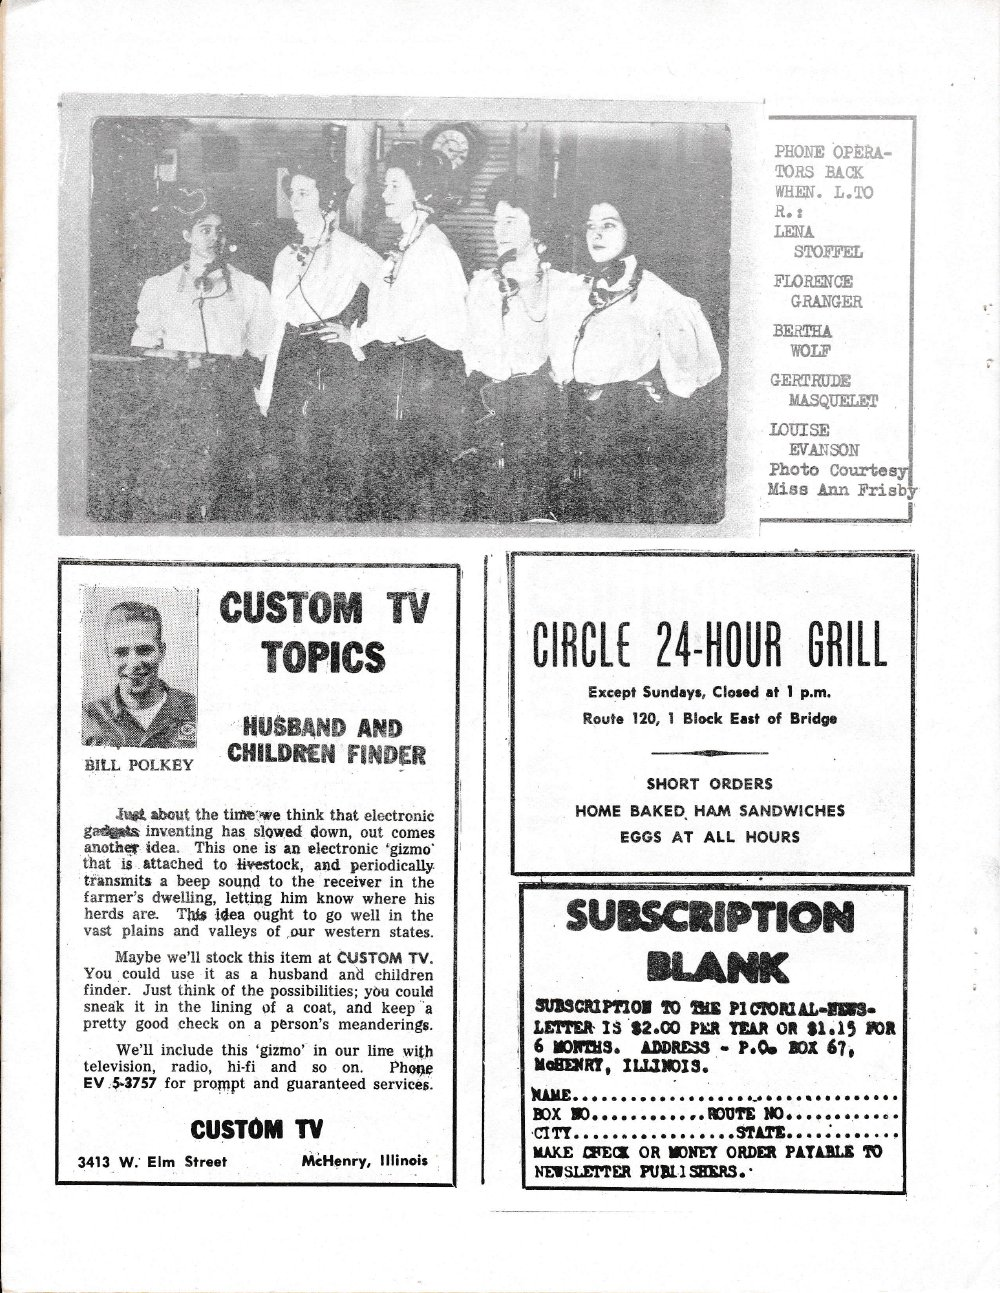 The Pictorial Newsletter: July 19, 1961